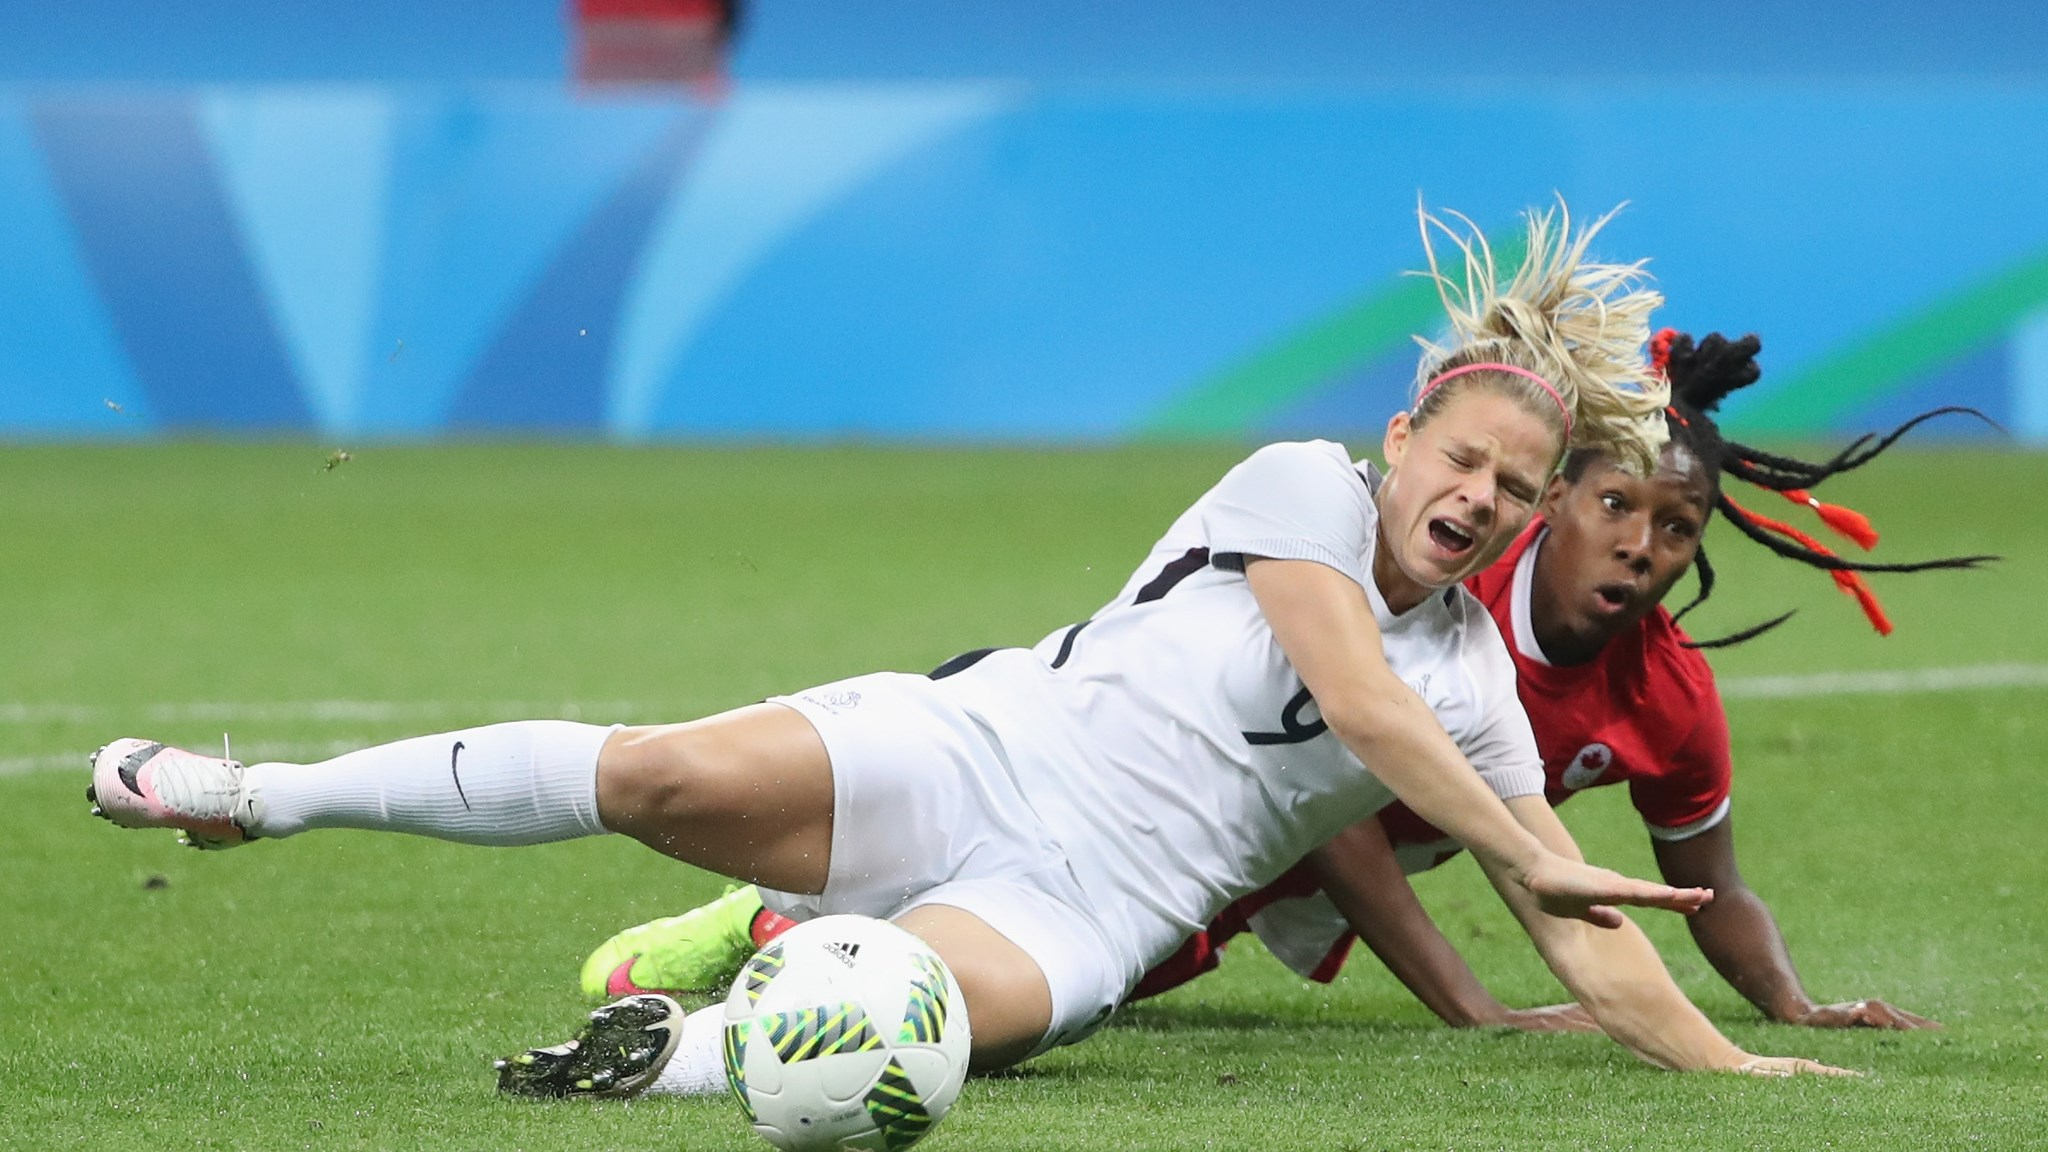 Le Sommer aurait pu obtenir un penalty sur ce tacle de Buchanan (photo FIFA.com)